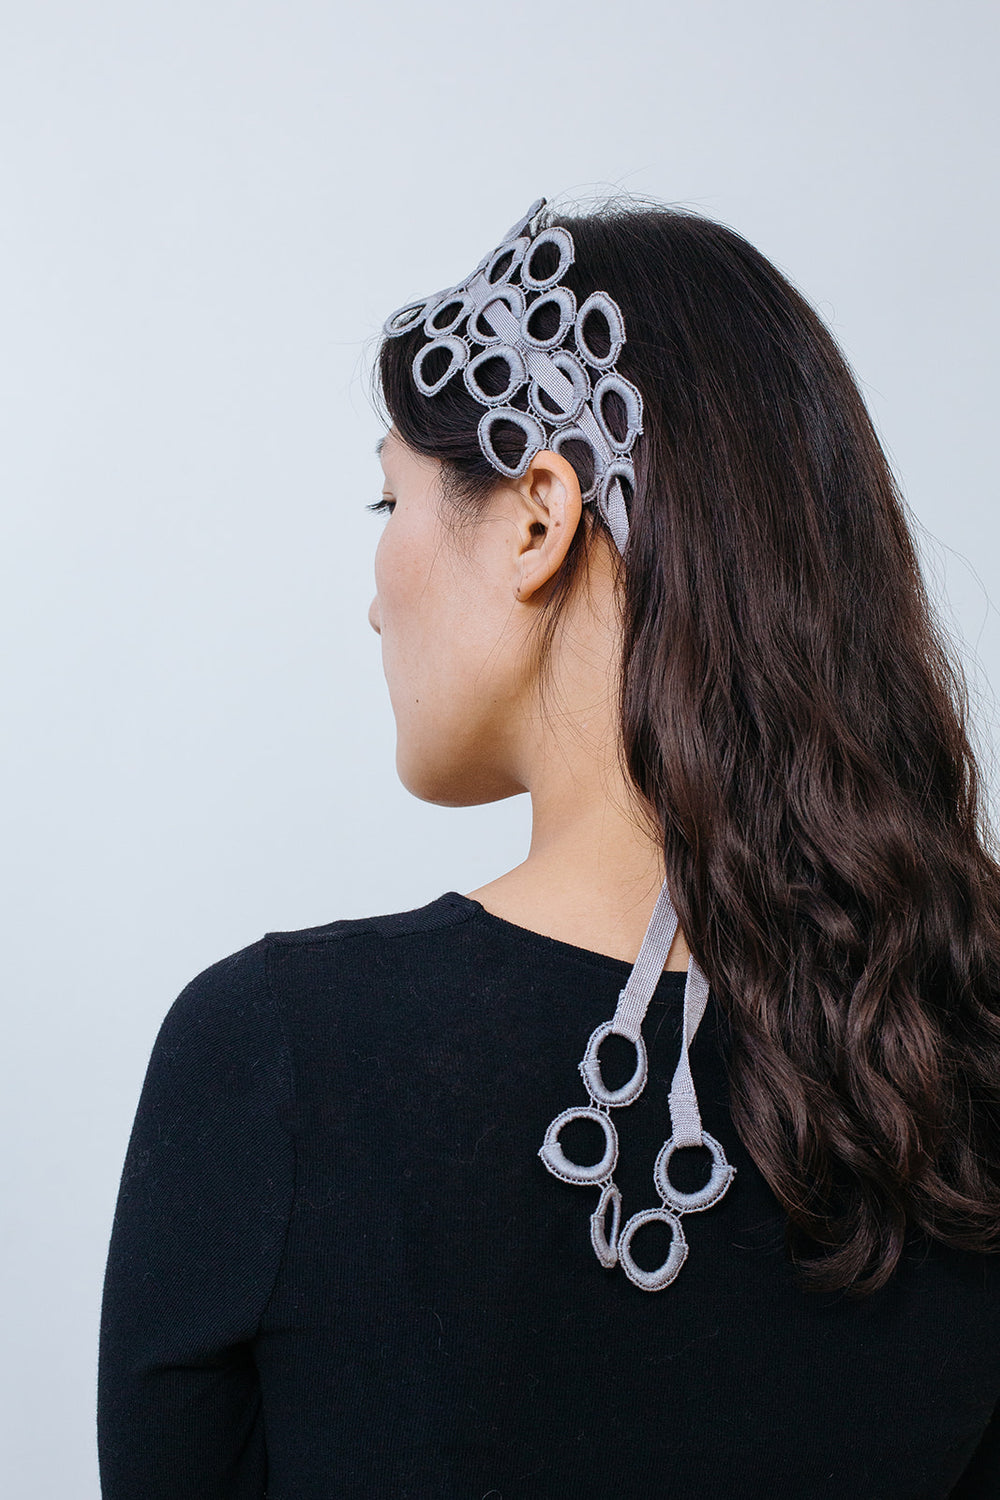 Lace Hairband and Necklace